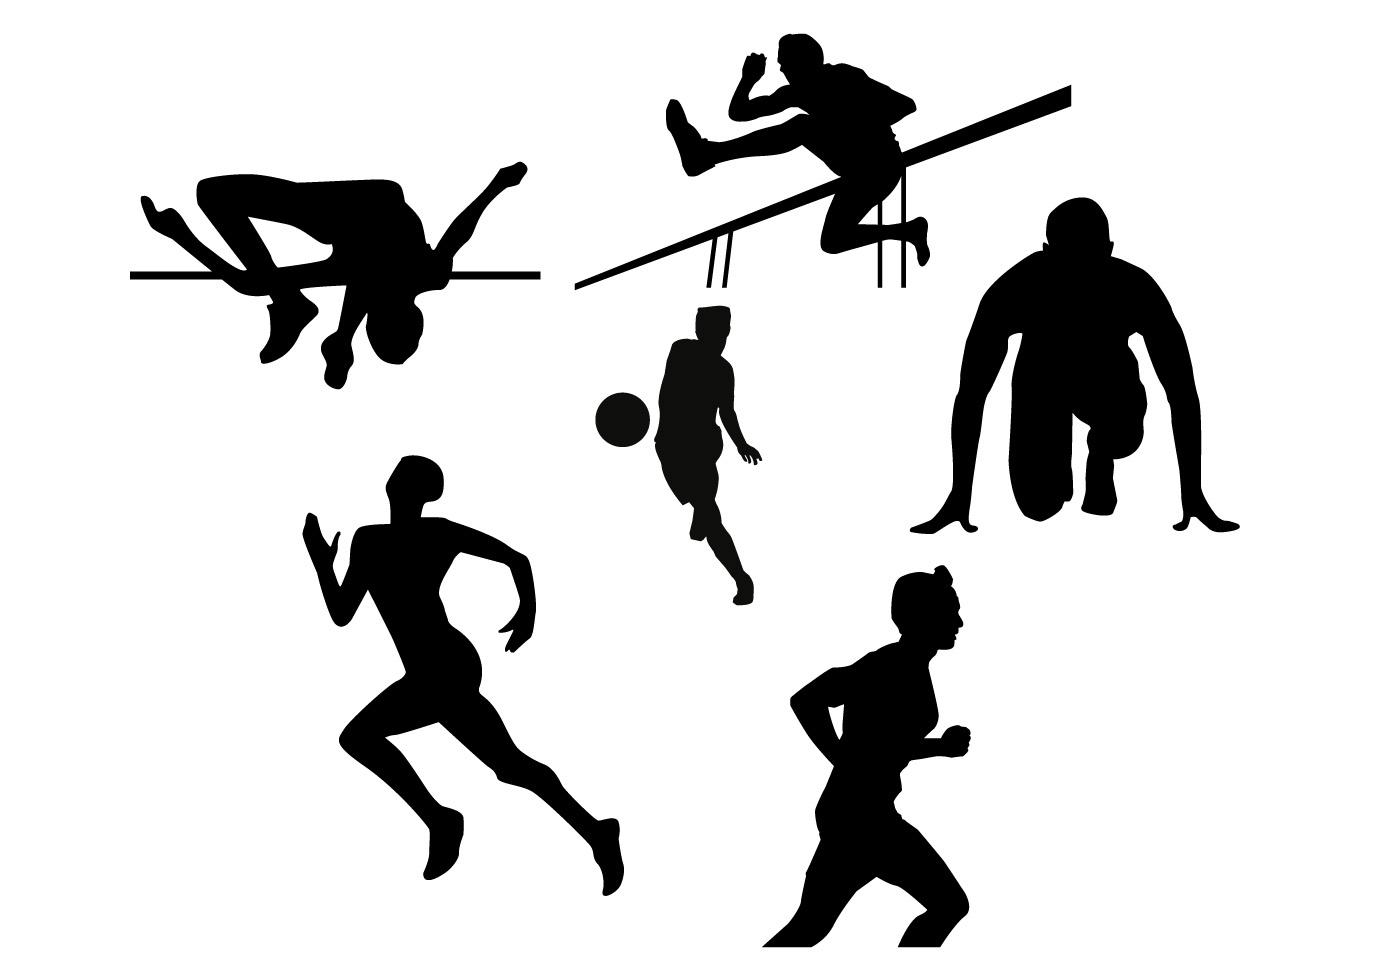 HD Running Athlete Silhouette Design » Free Vector Art, Images.